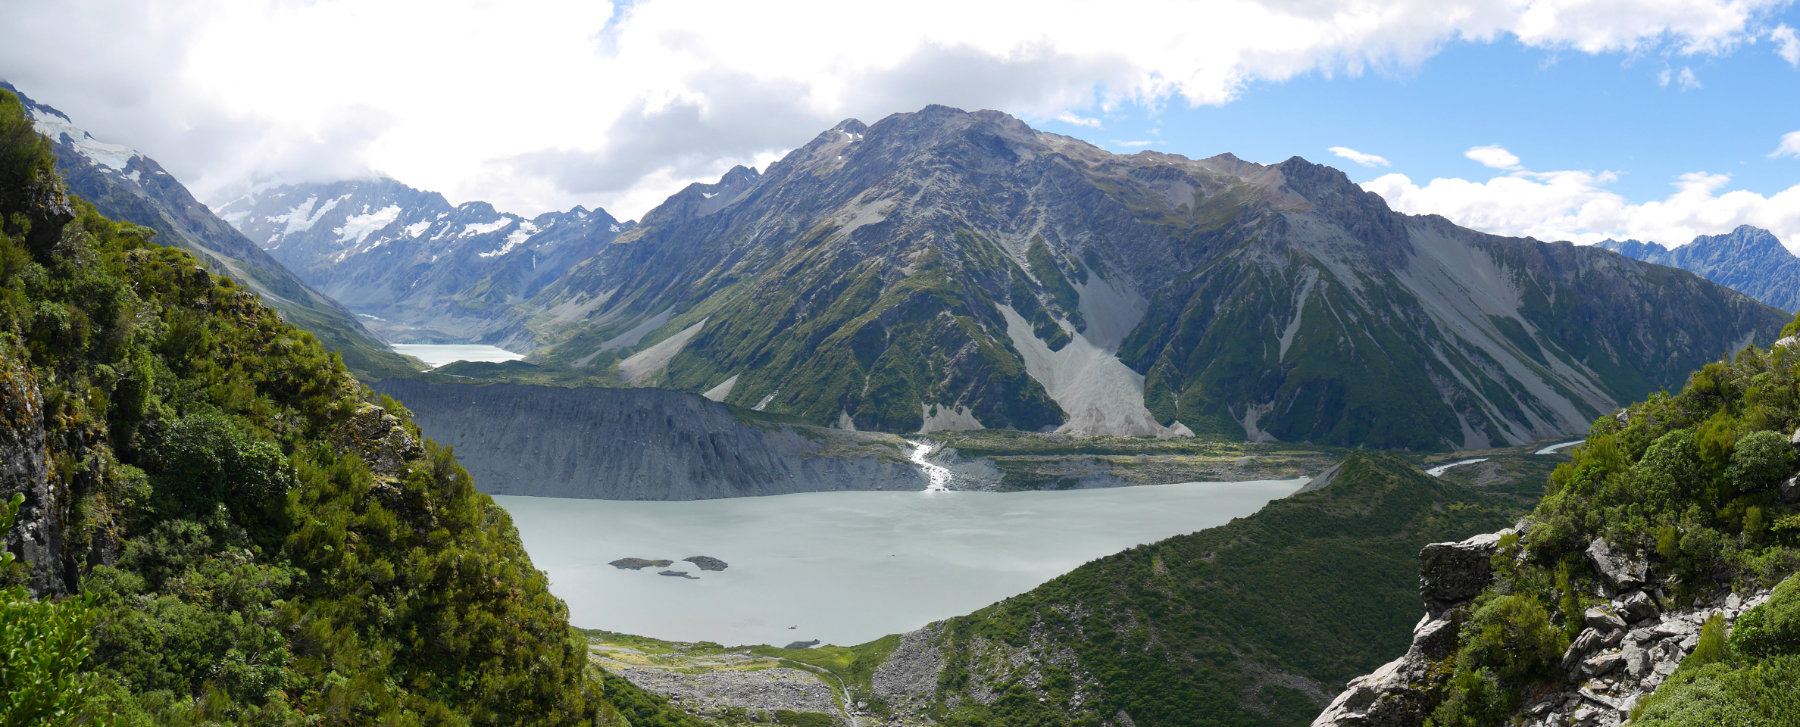 Looking down to the Hooker Valley